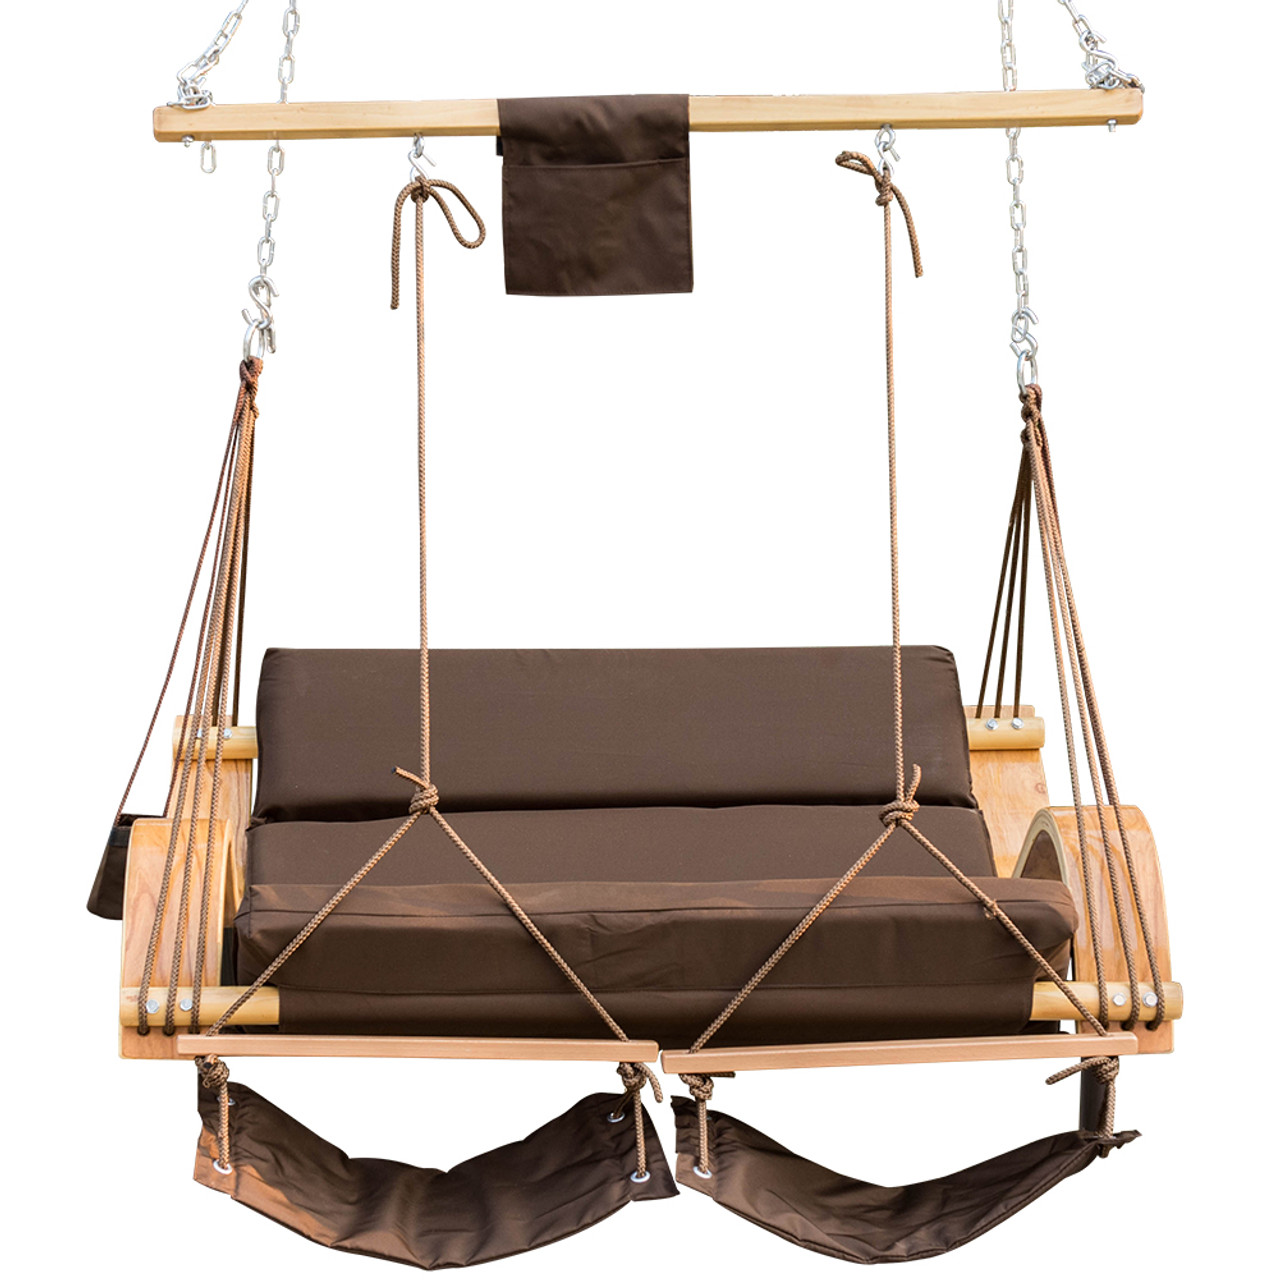 Lazy Daze Hammocks Deluxe Oversized Double Hanging Rope Chair Cotton